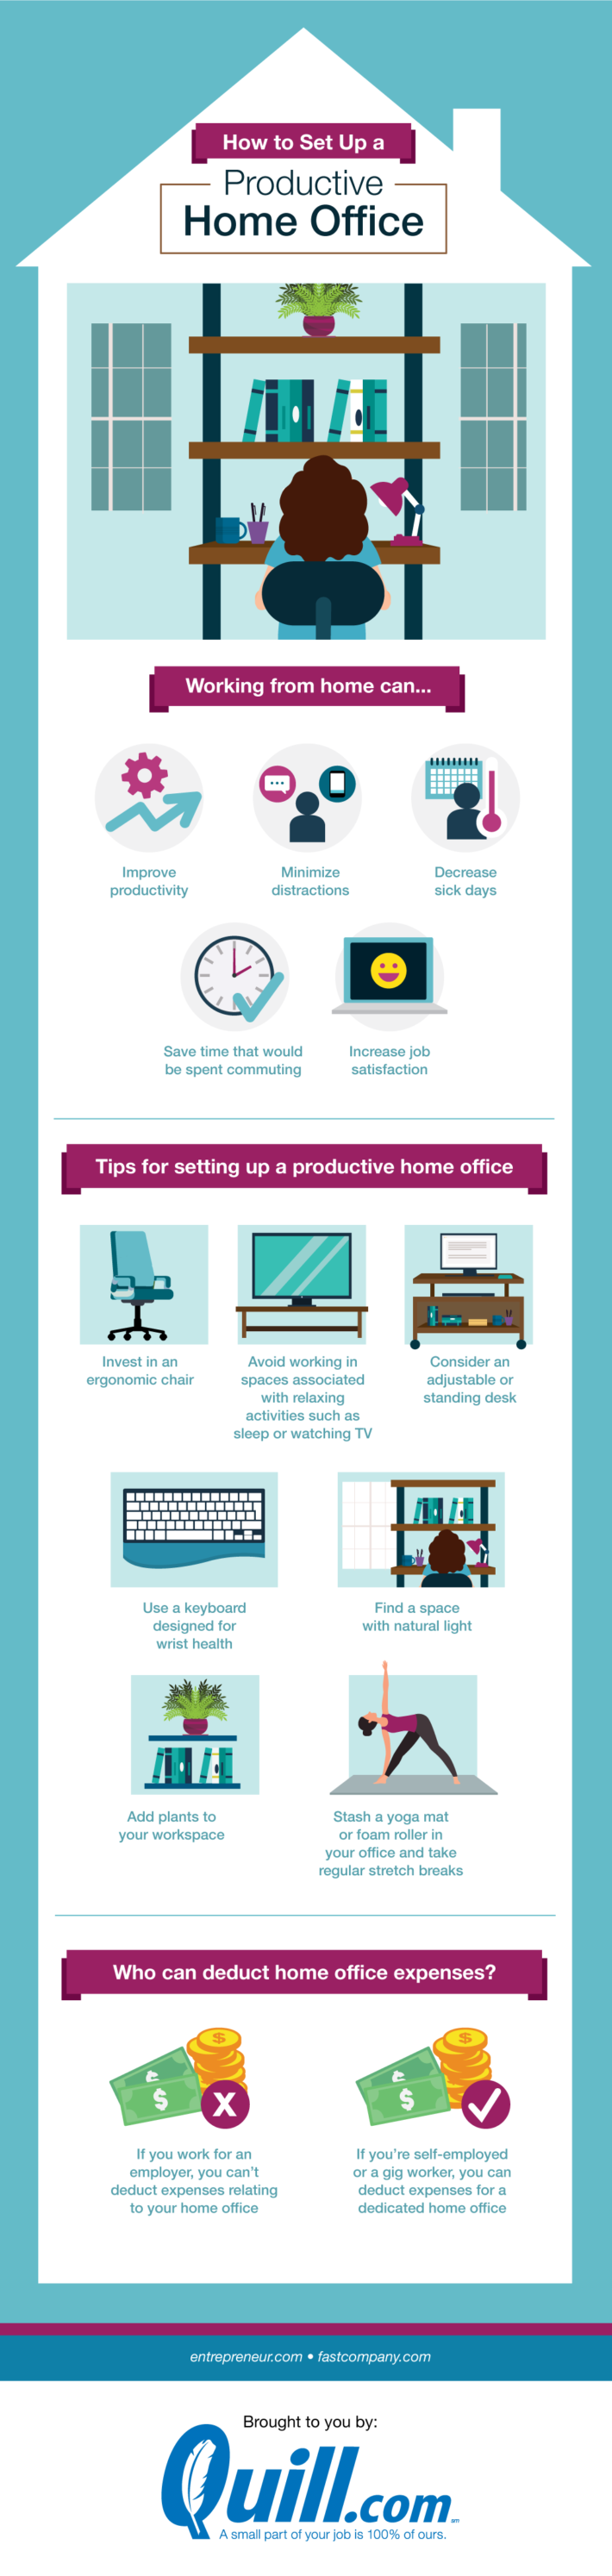 Tips for setting up a productive remote home office